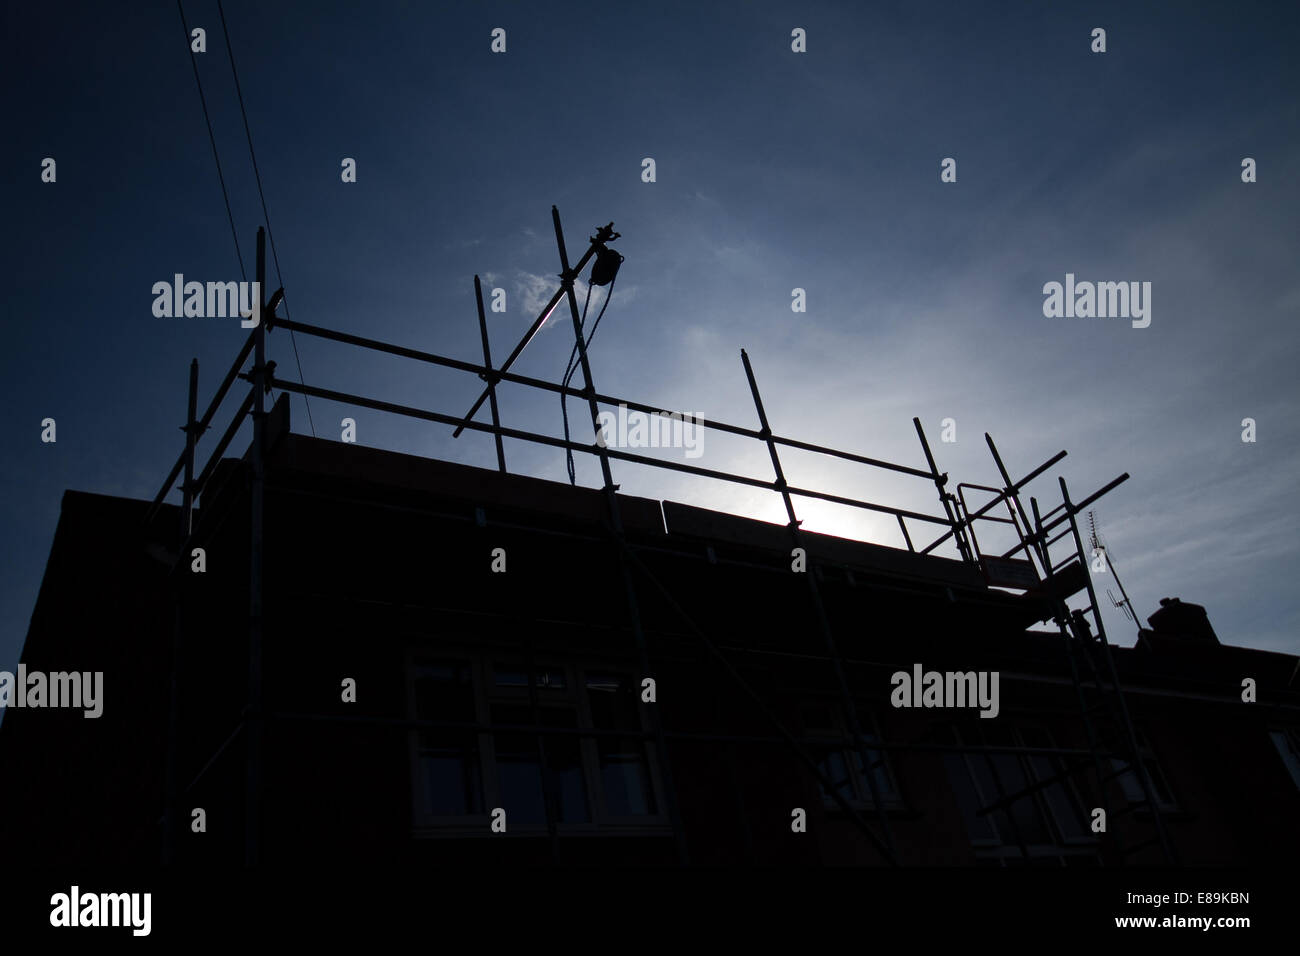 A silhouette of scaffolding on a house - Stock Image